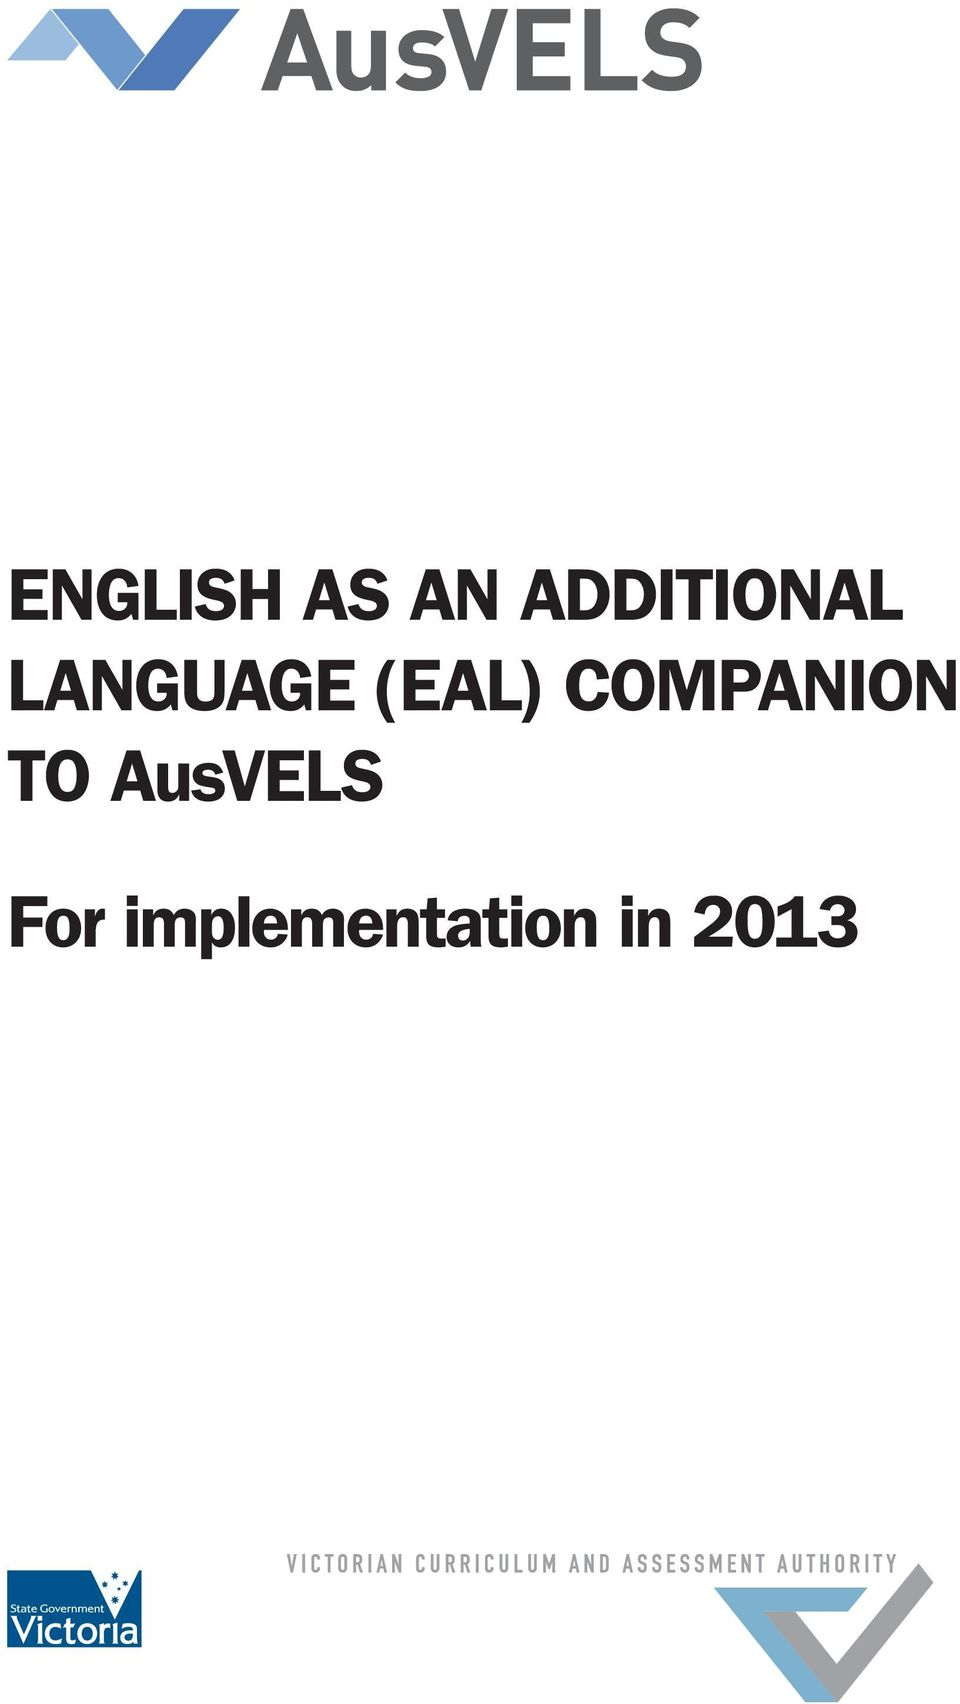 (EAL) COMPANION TO